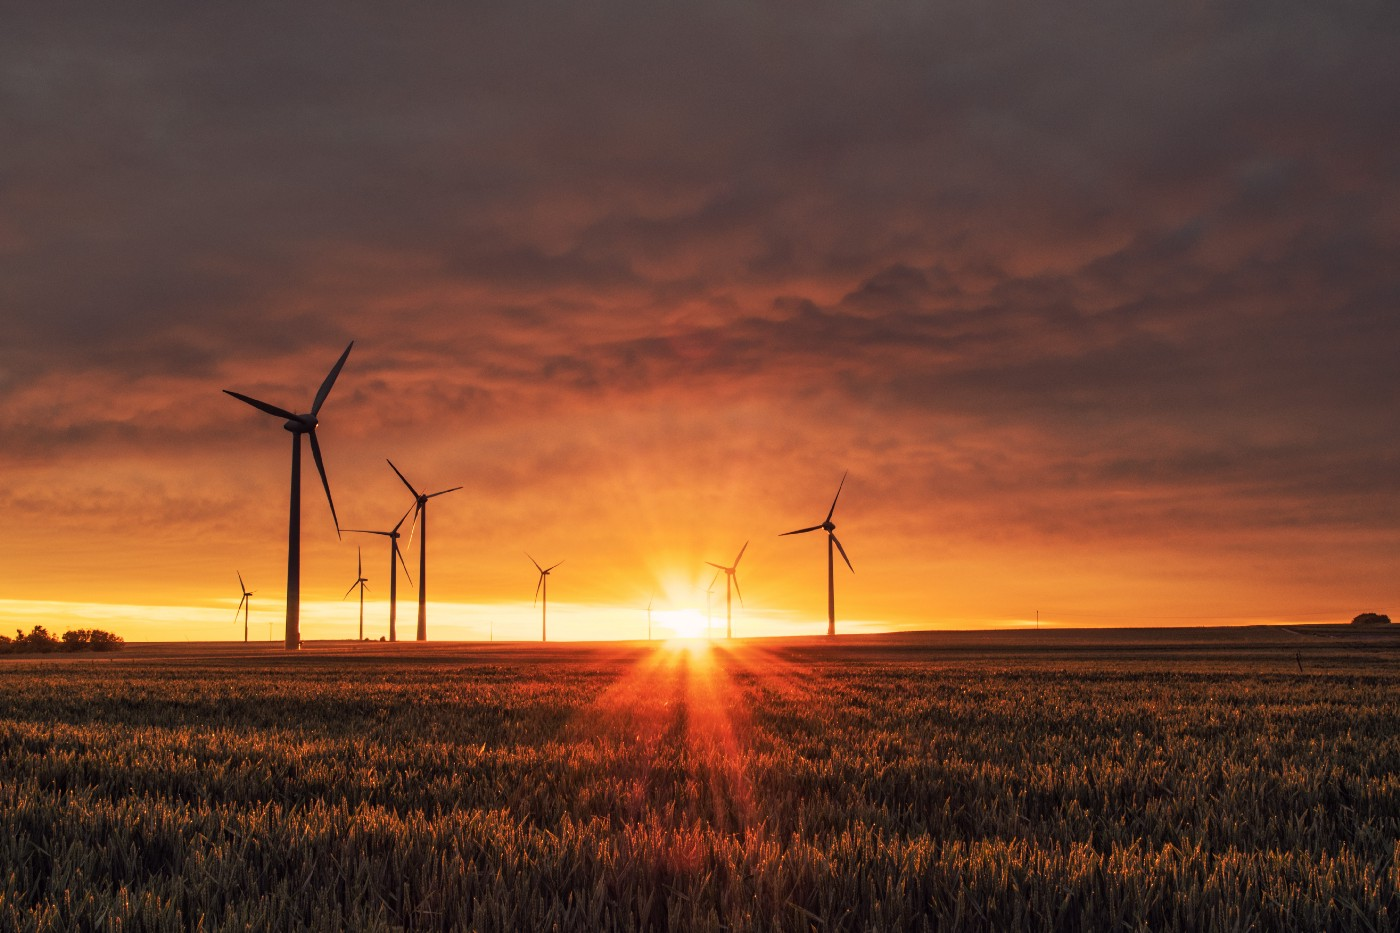 A windfarm in the middle of a field at sunset.